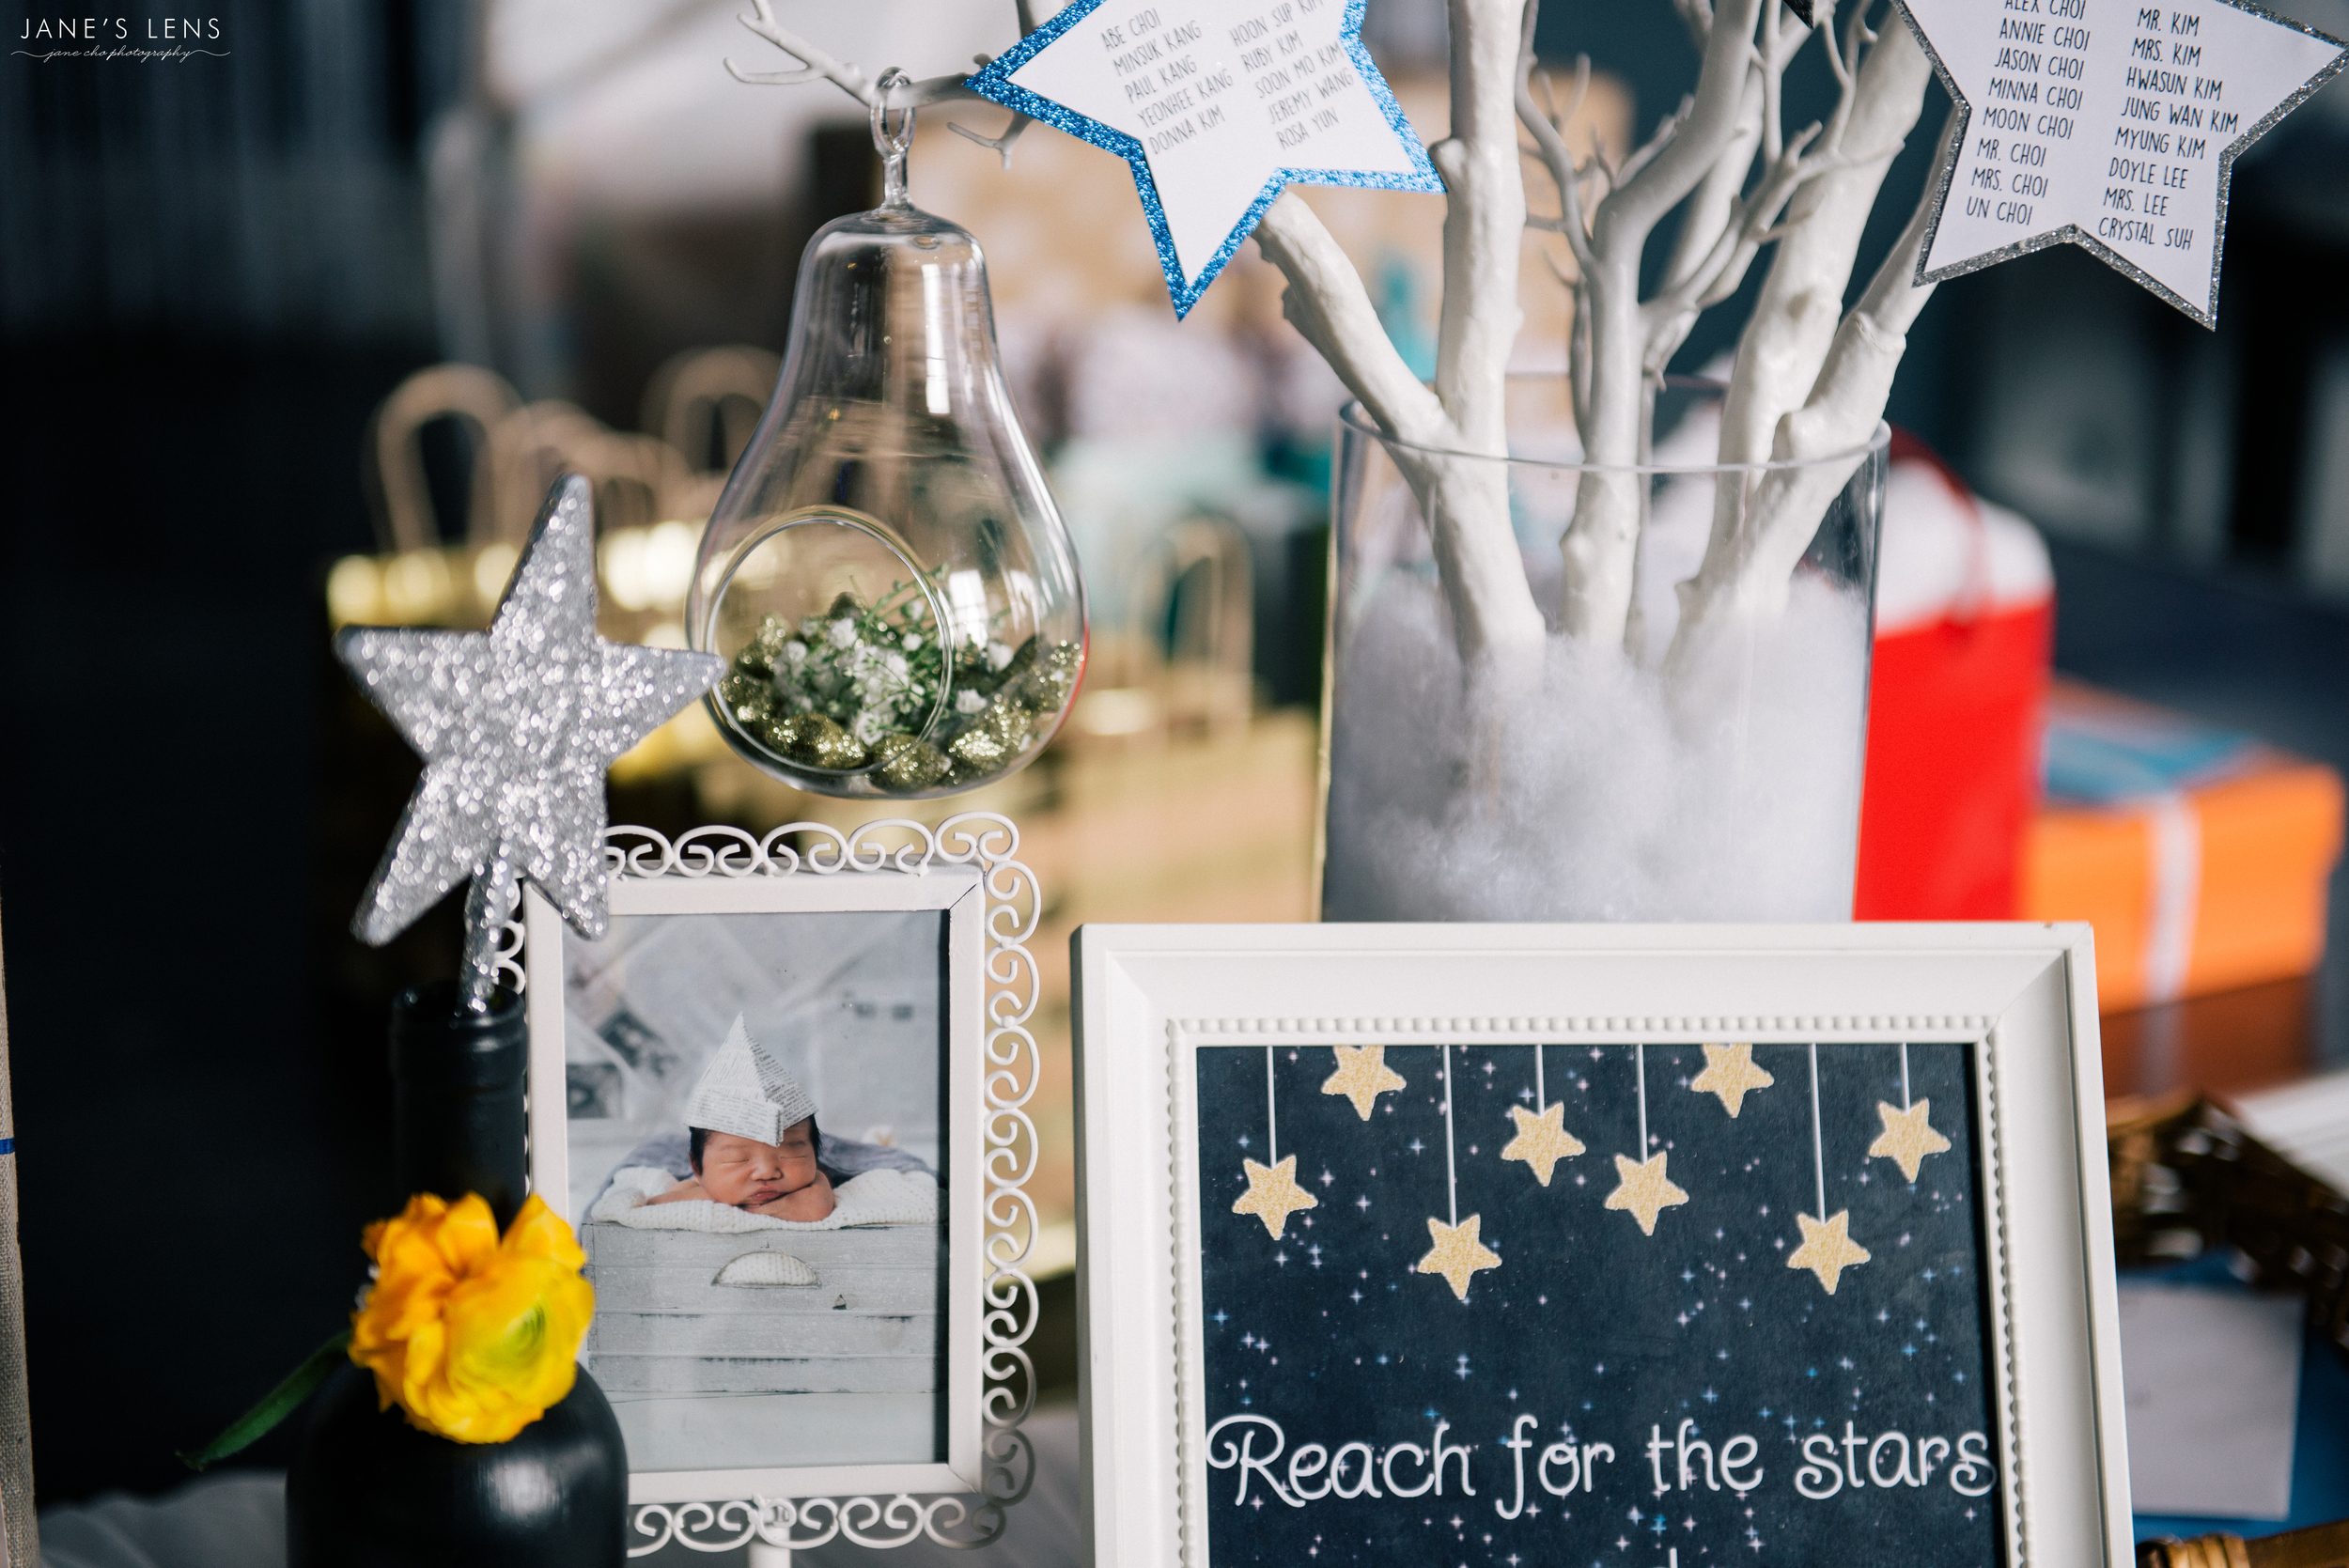 Twinkle Twinkle Little Star Dohl Dohlsang Welcome Table Seat Chart doljanchi.jpg